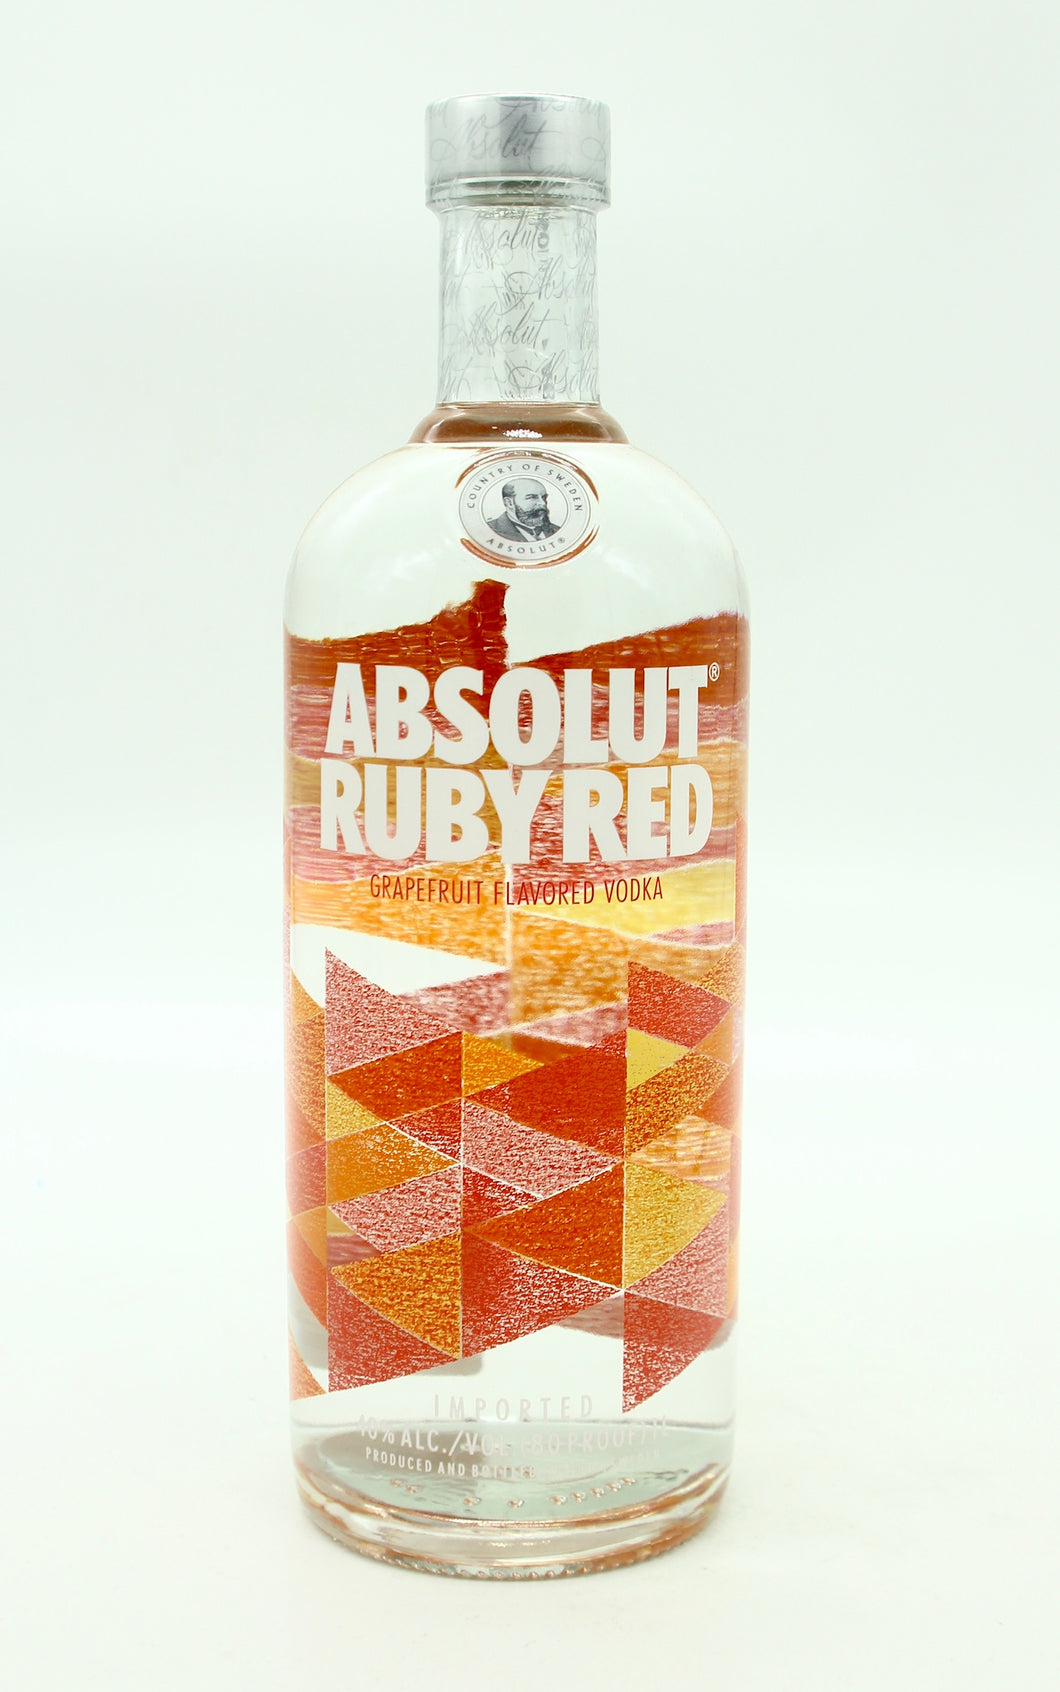 Absolut Rubi Red